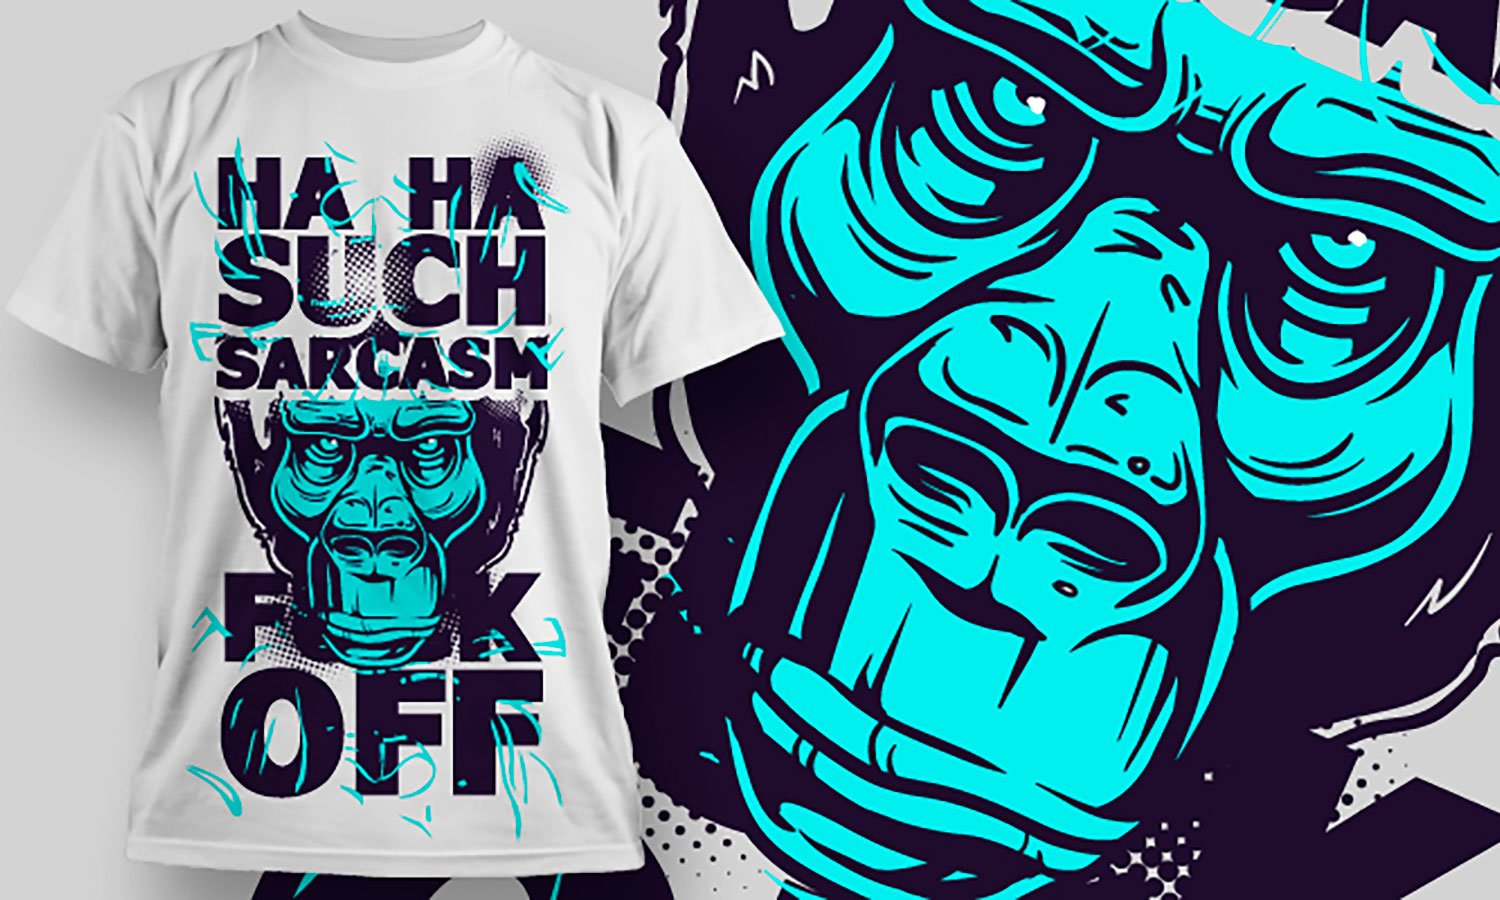 Sarcasm - Printed T-Shirt for Men, Women and Kids - TS095